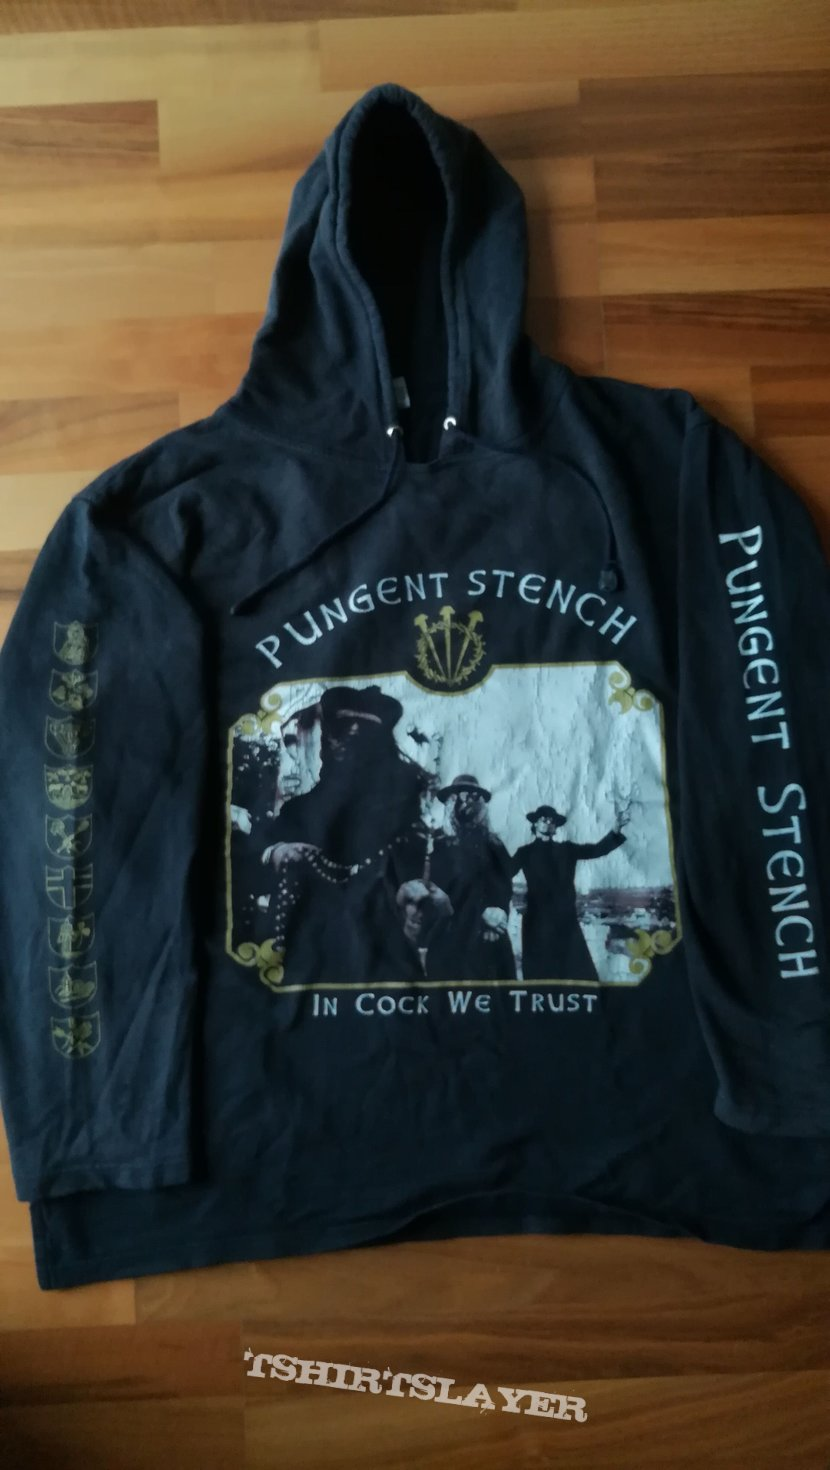 Pungent Stench In Cock We Trust Hoodie